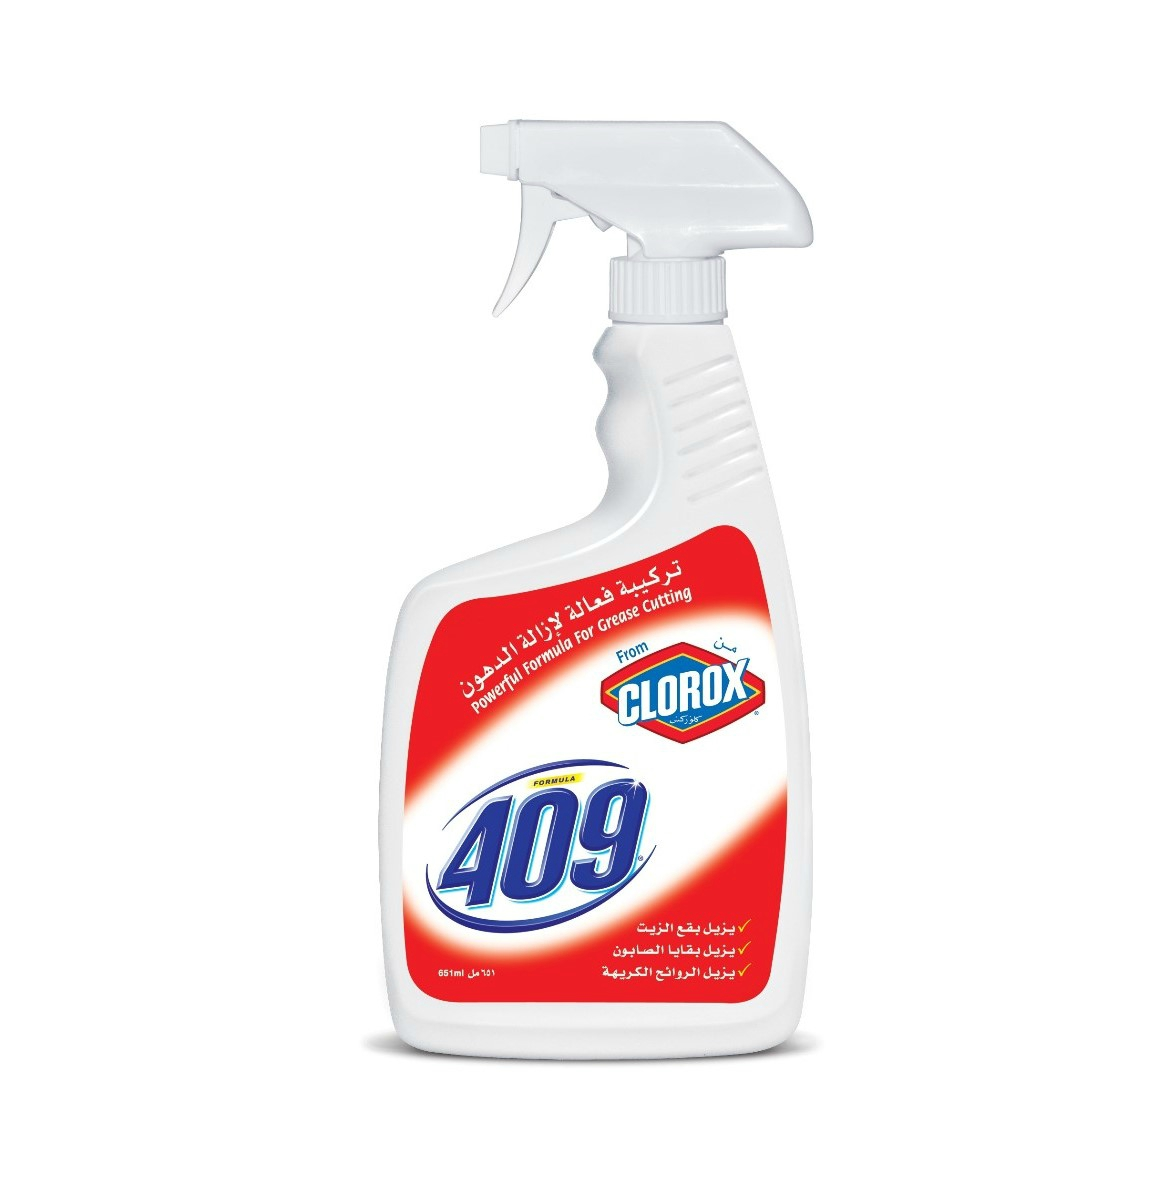 Clorox Formula 409 Cleaner Degreaser Disinfectant Spray, 651ml - UPC:  6281065006518 | ASWAQ.COM